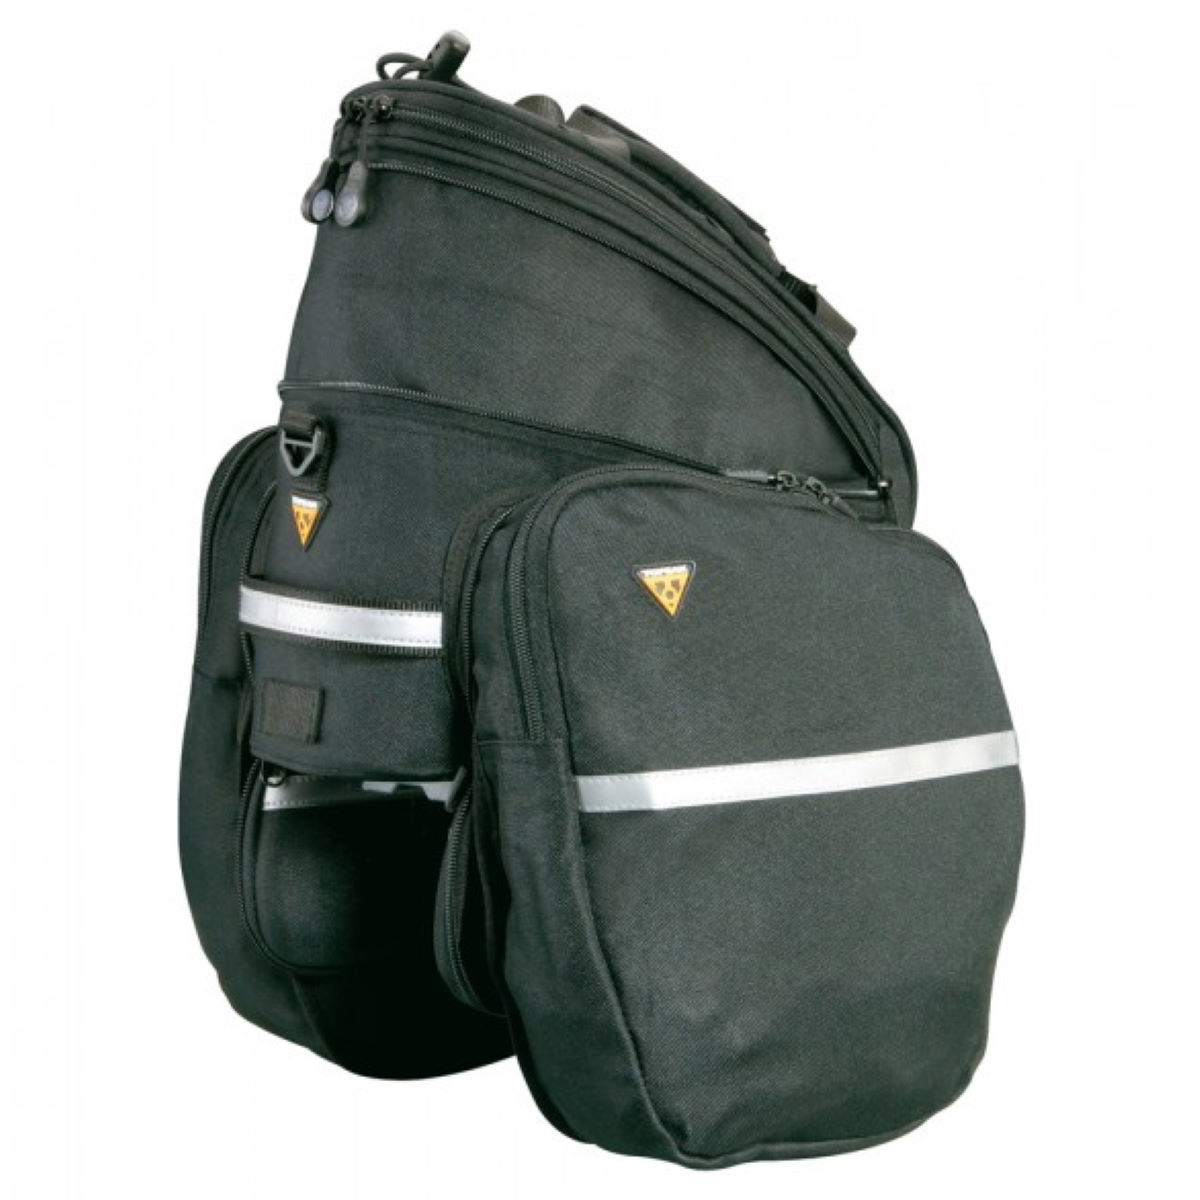 Topeak Topeak RX Trunk Bag DXP with Side Panniers   Rack Bags